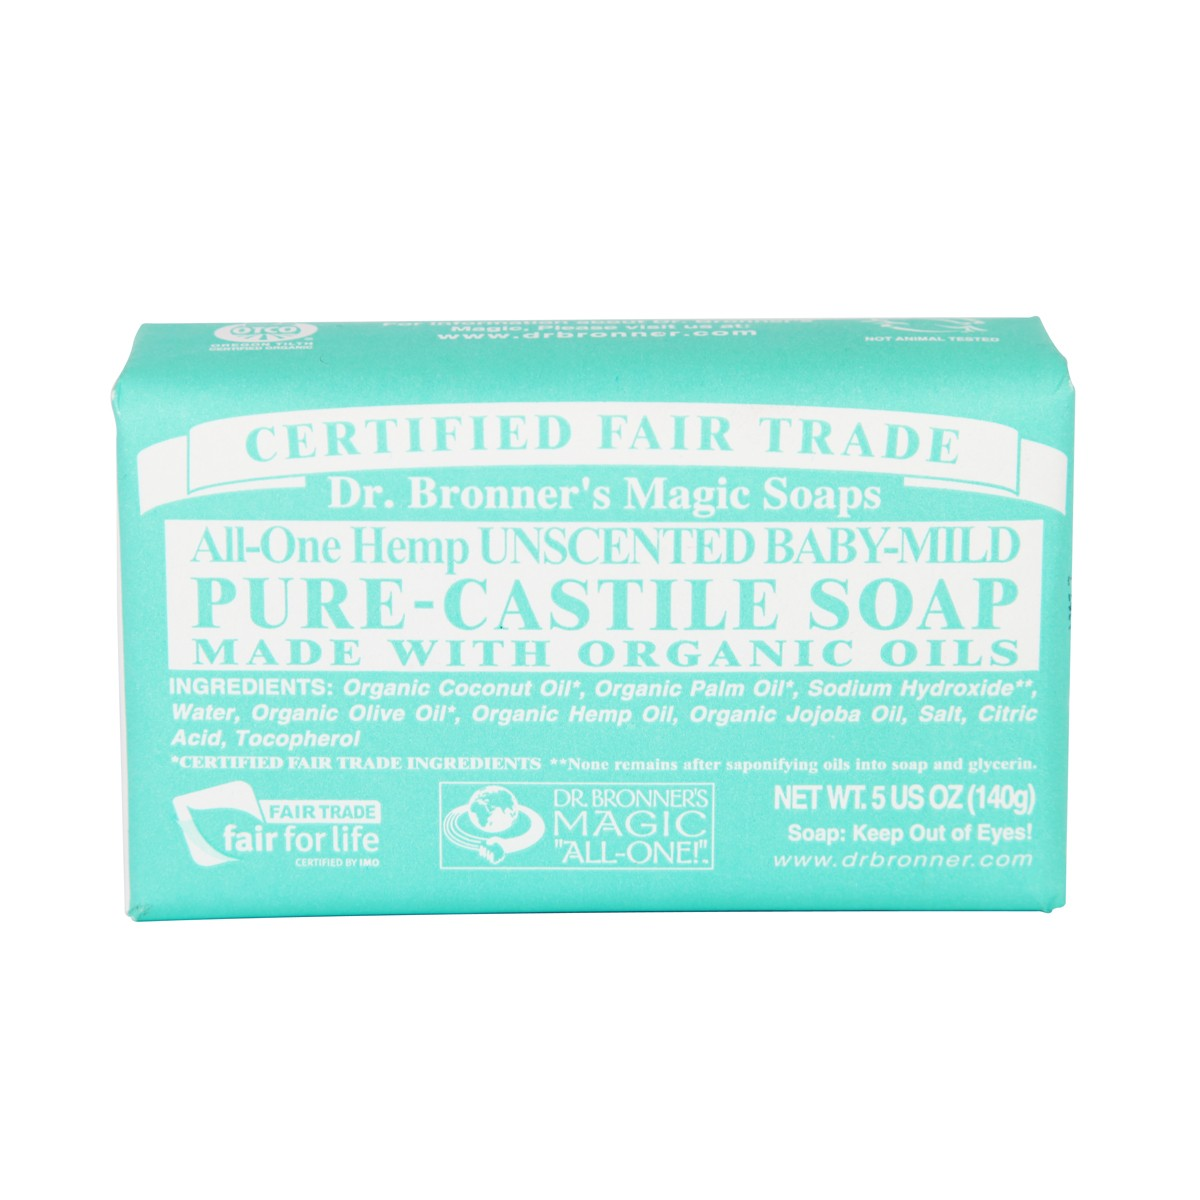 Dr Bronner's Magic soap All-One Hemp Unscented baby mild